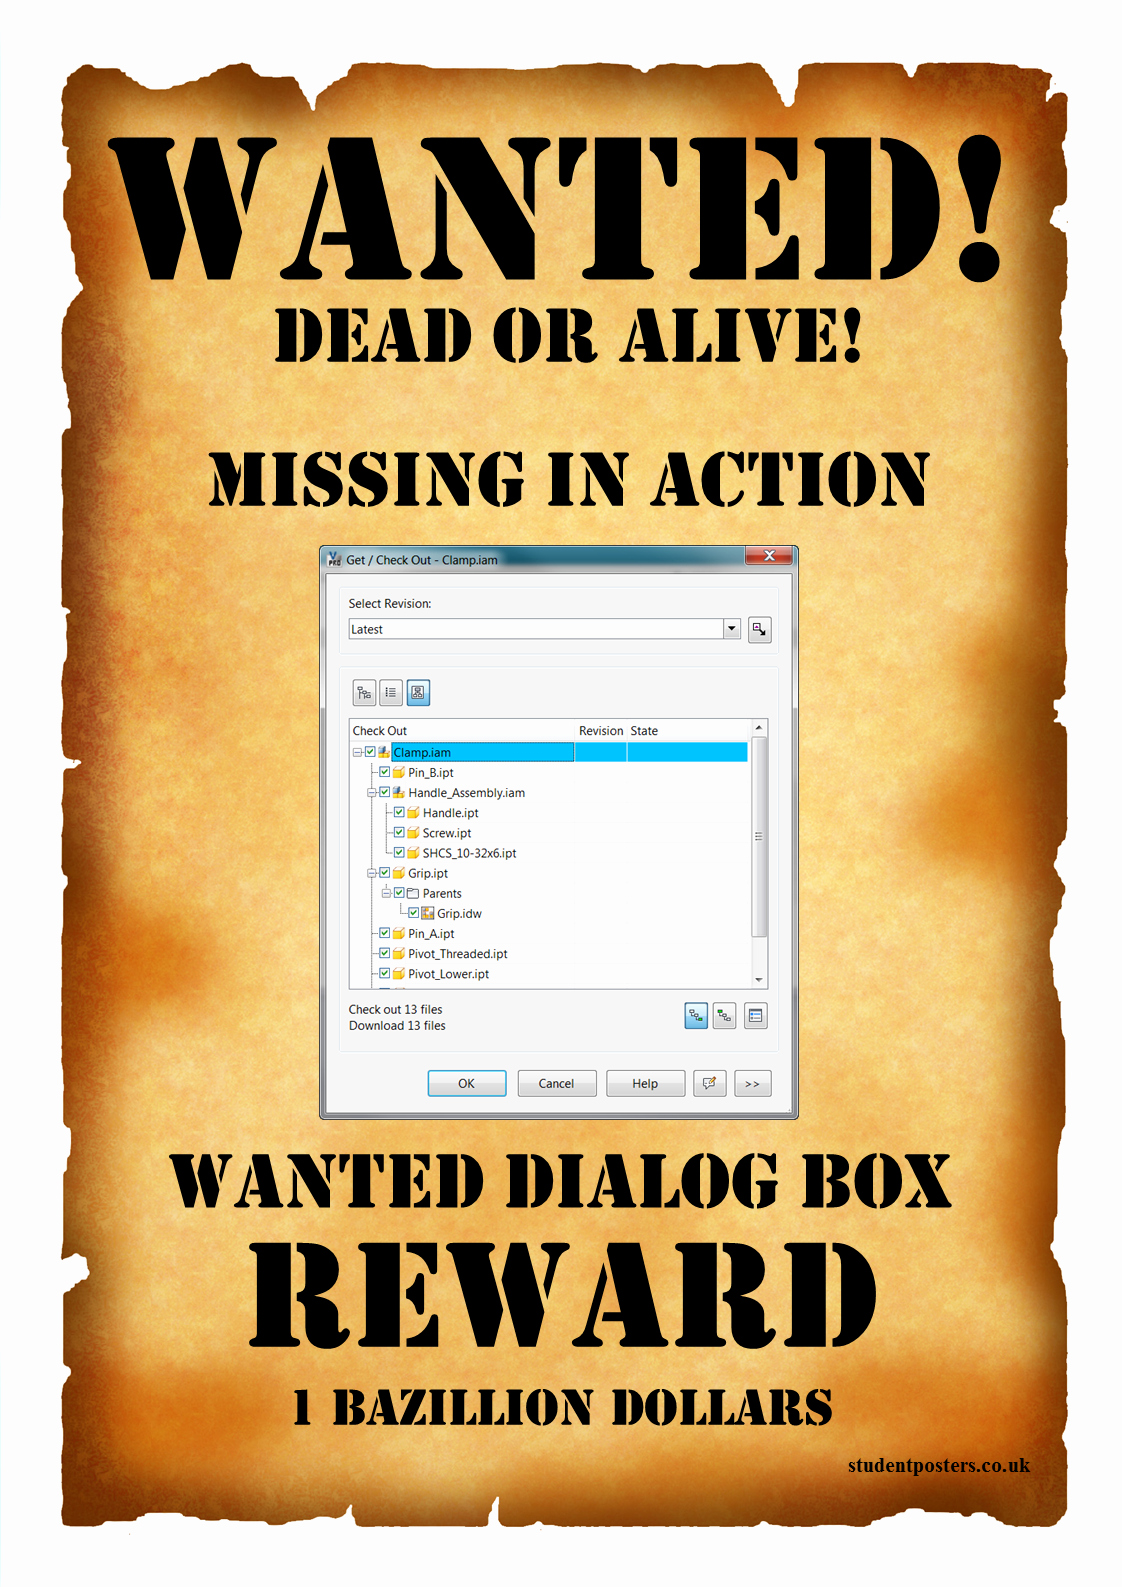 Free Wanted Poster Template Beautiful Adraft Tech Talk Wanted Missing Dialog Box